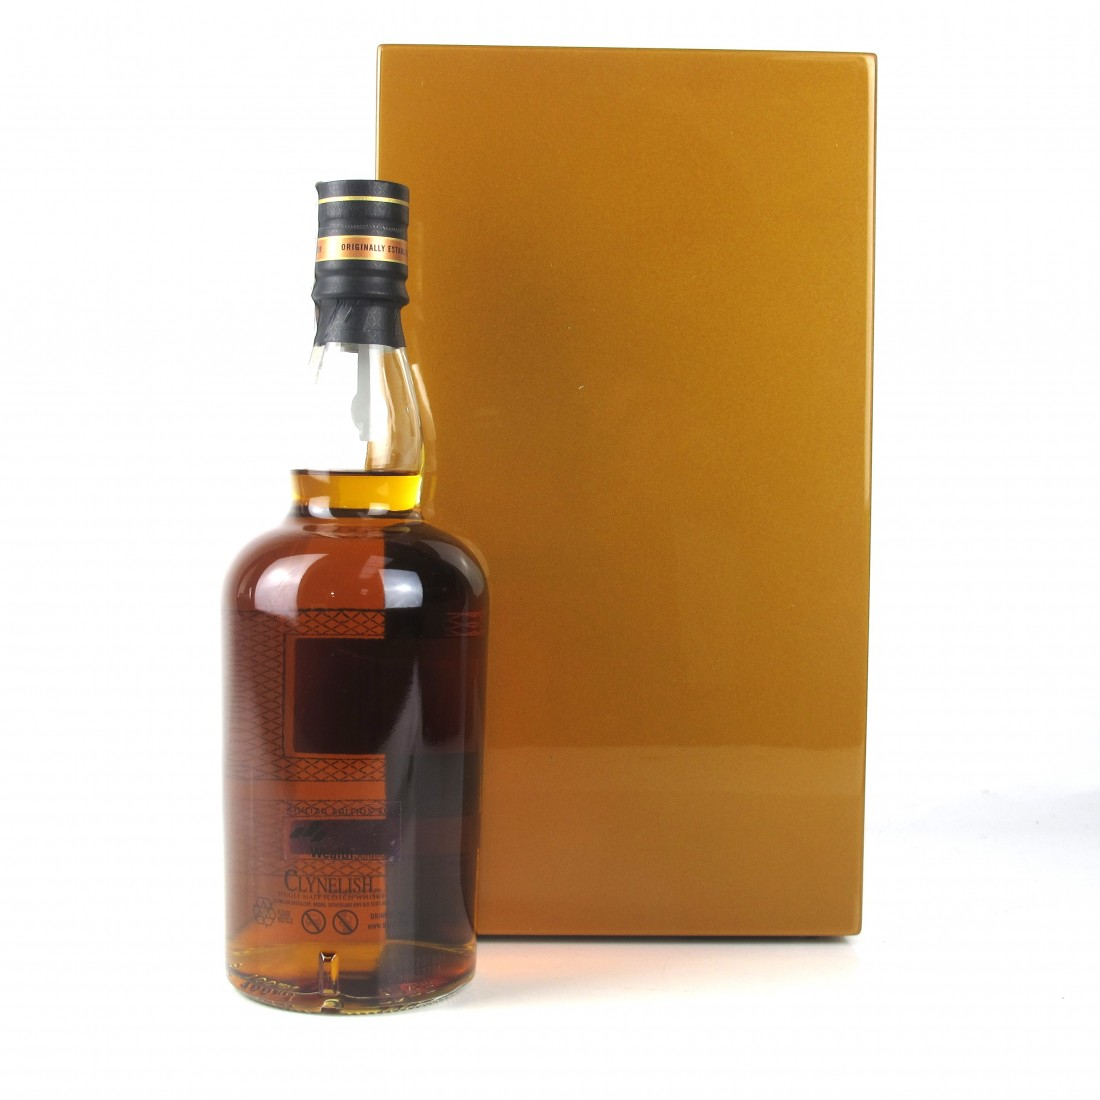 Clynelish 1973 Single Cask 41 Year Old / Wealth Solutions